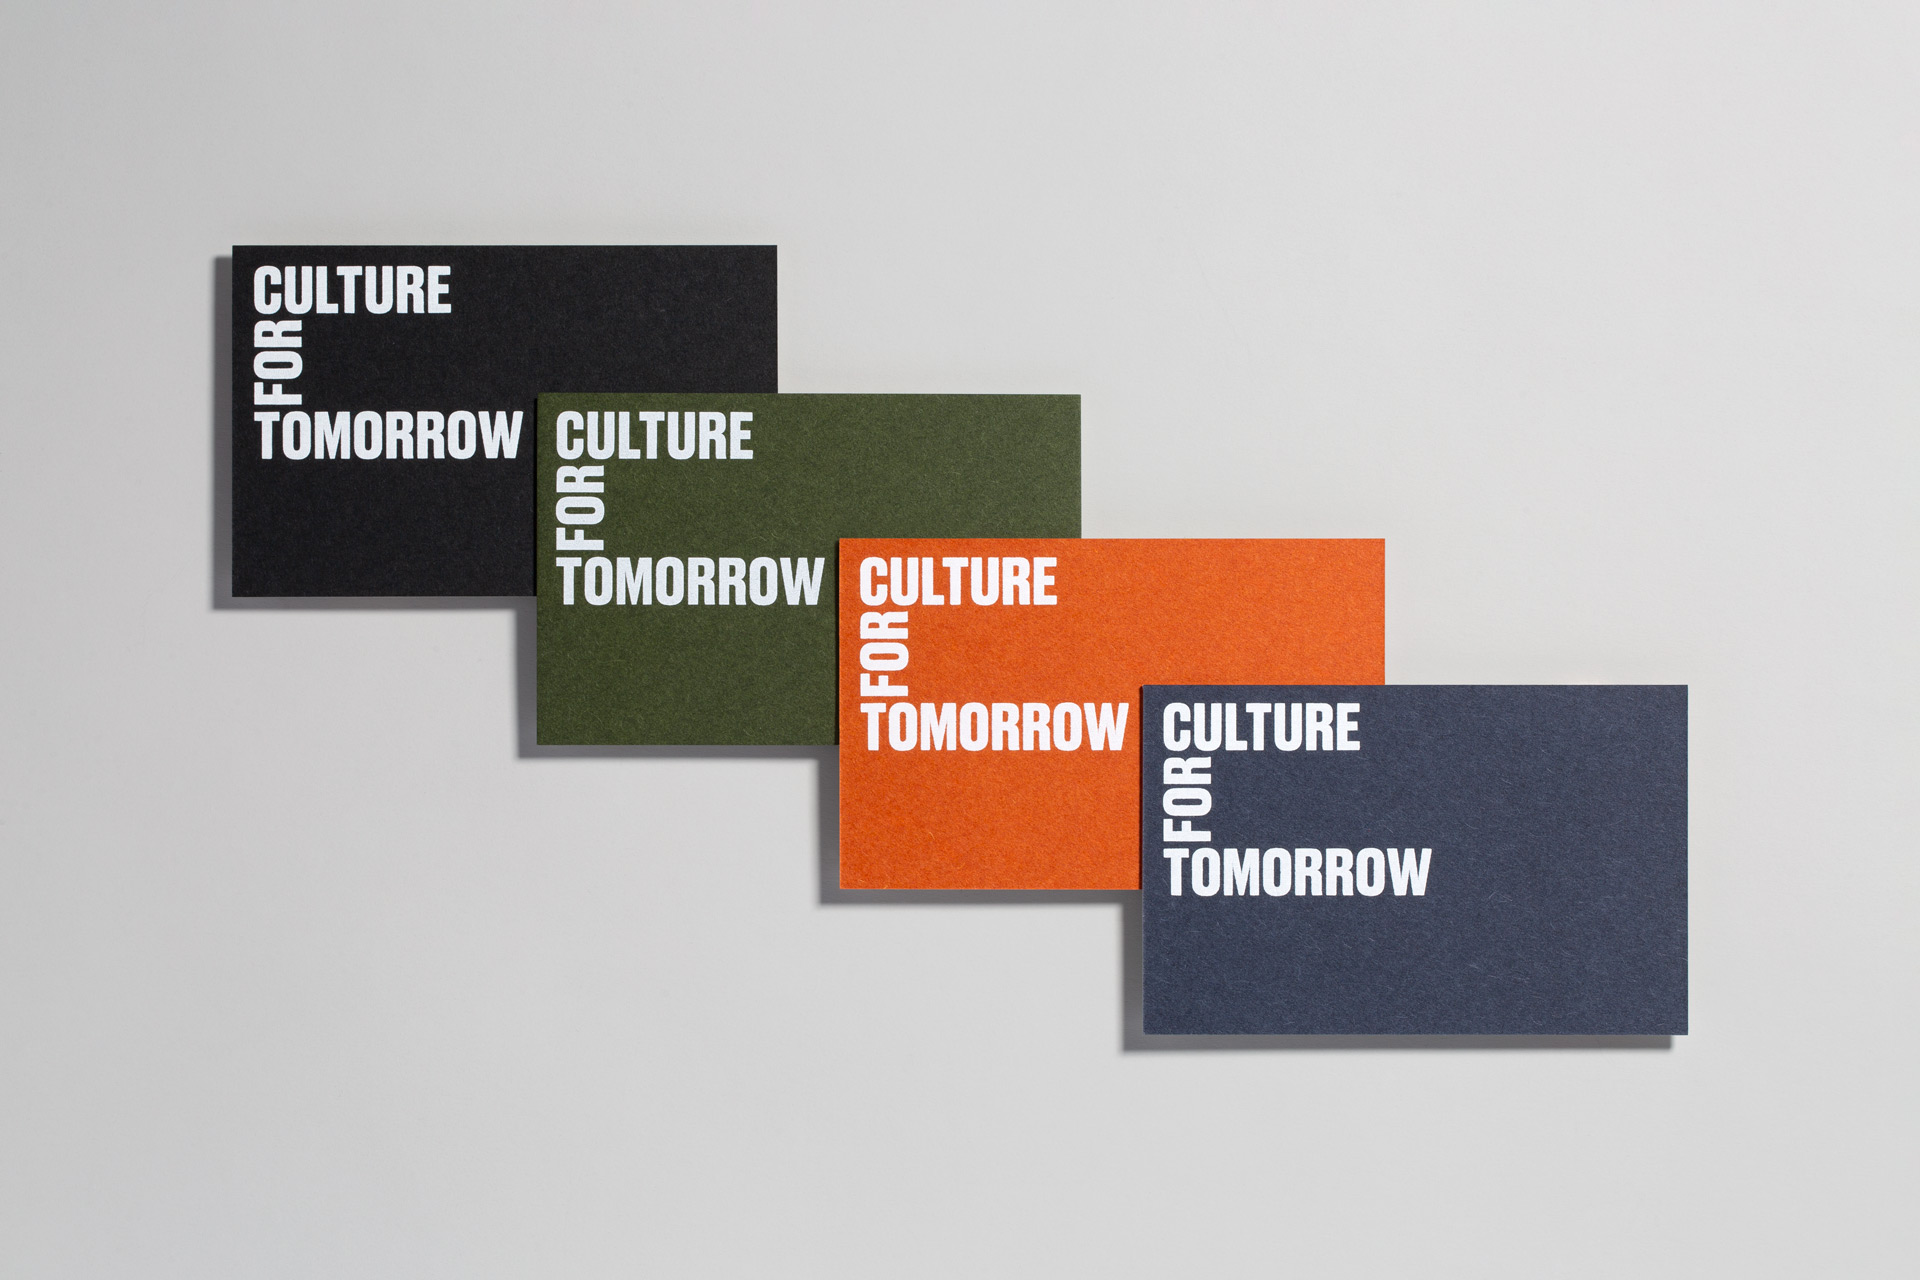 culture-for-tomorrow_02